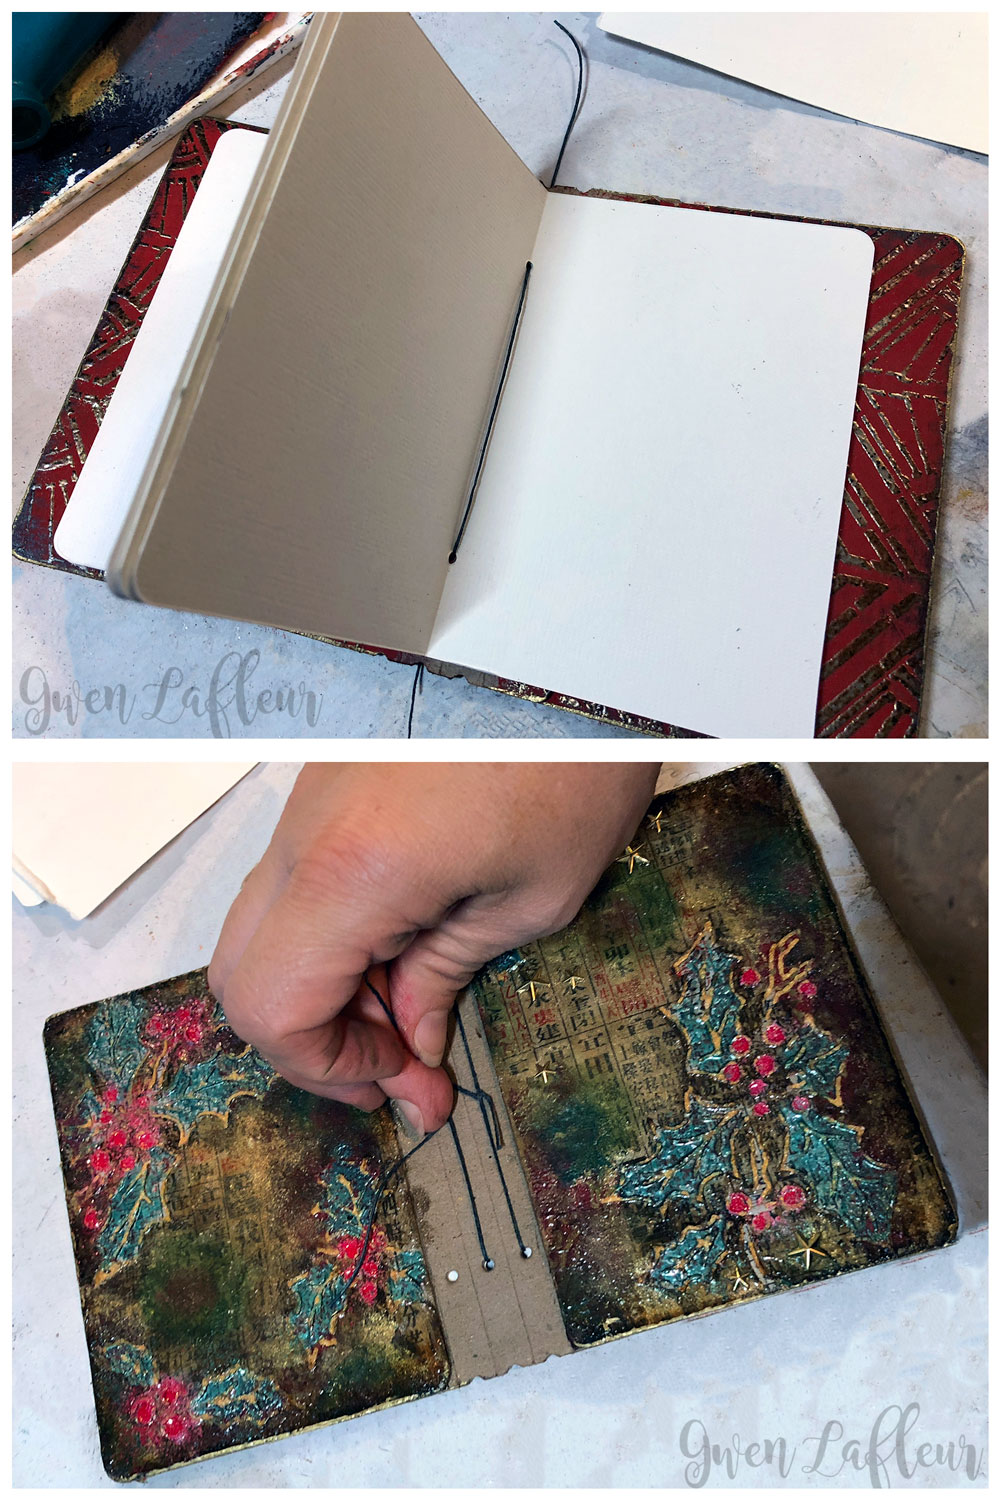 Embossed Mini Winter Art Journal Tutorial Steps 9-10 | Gwen Lafleur